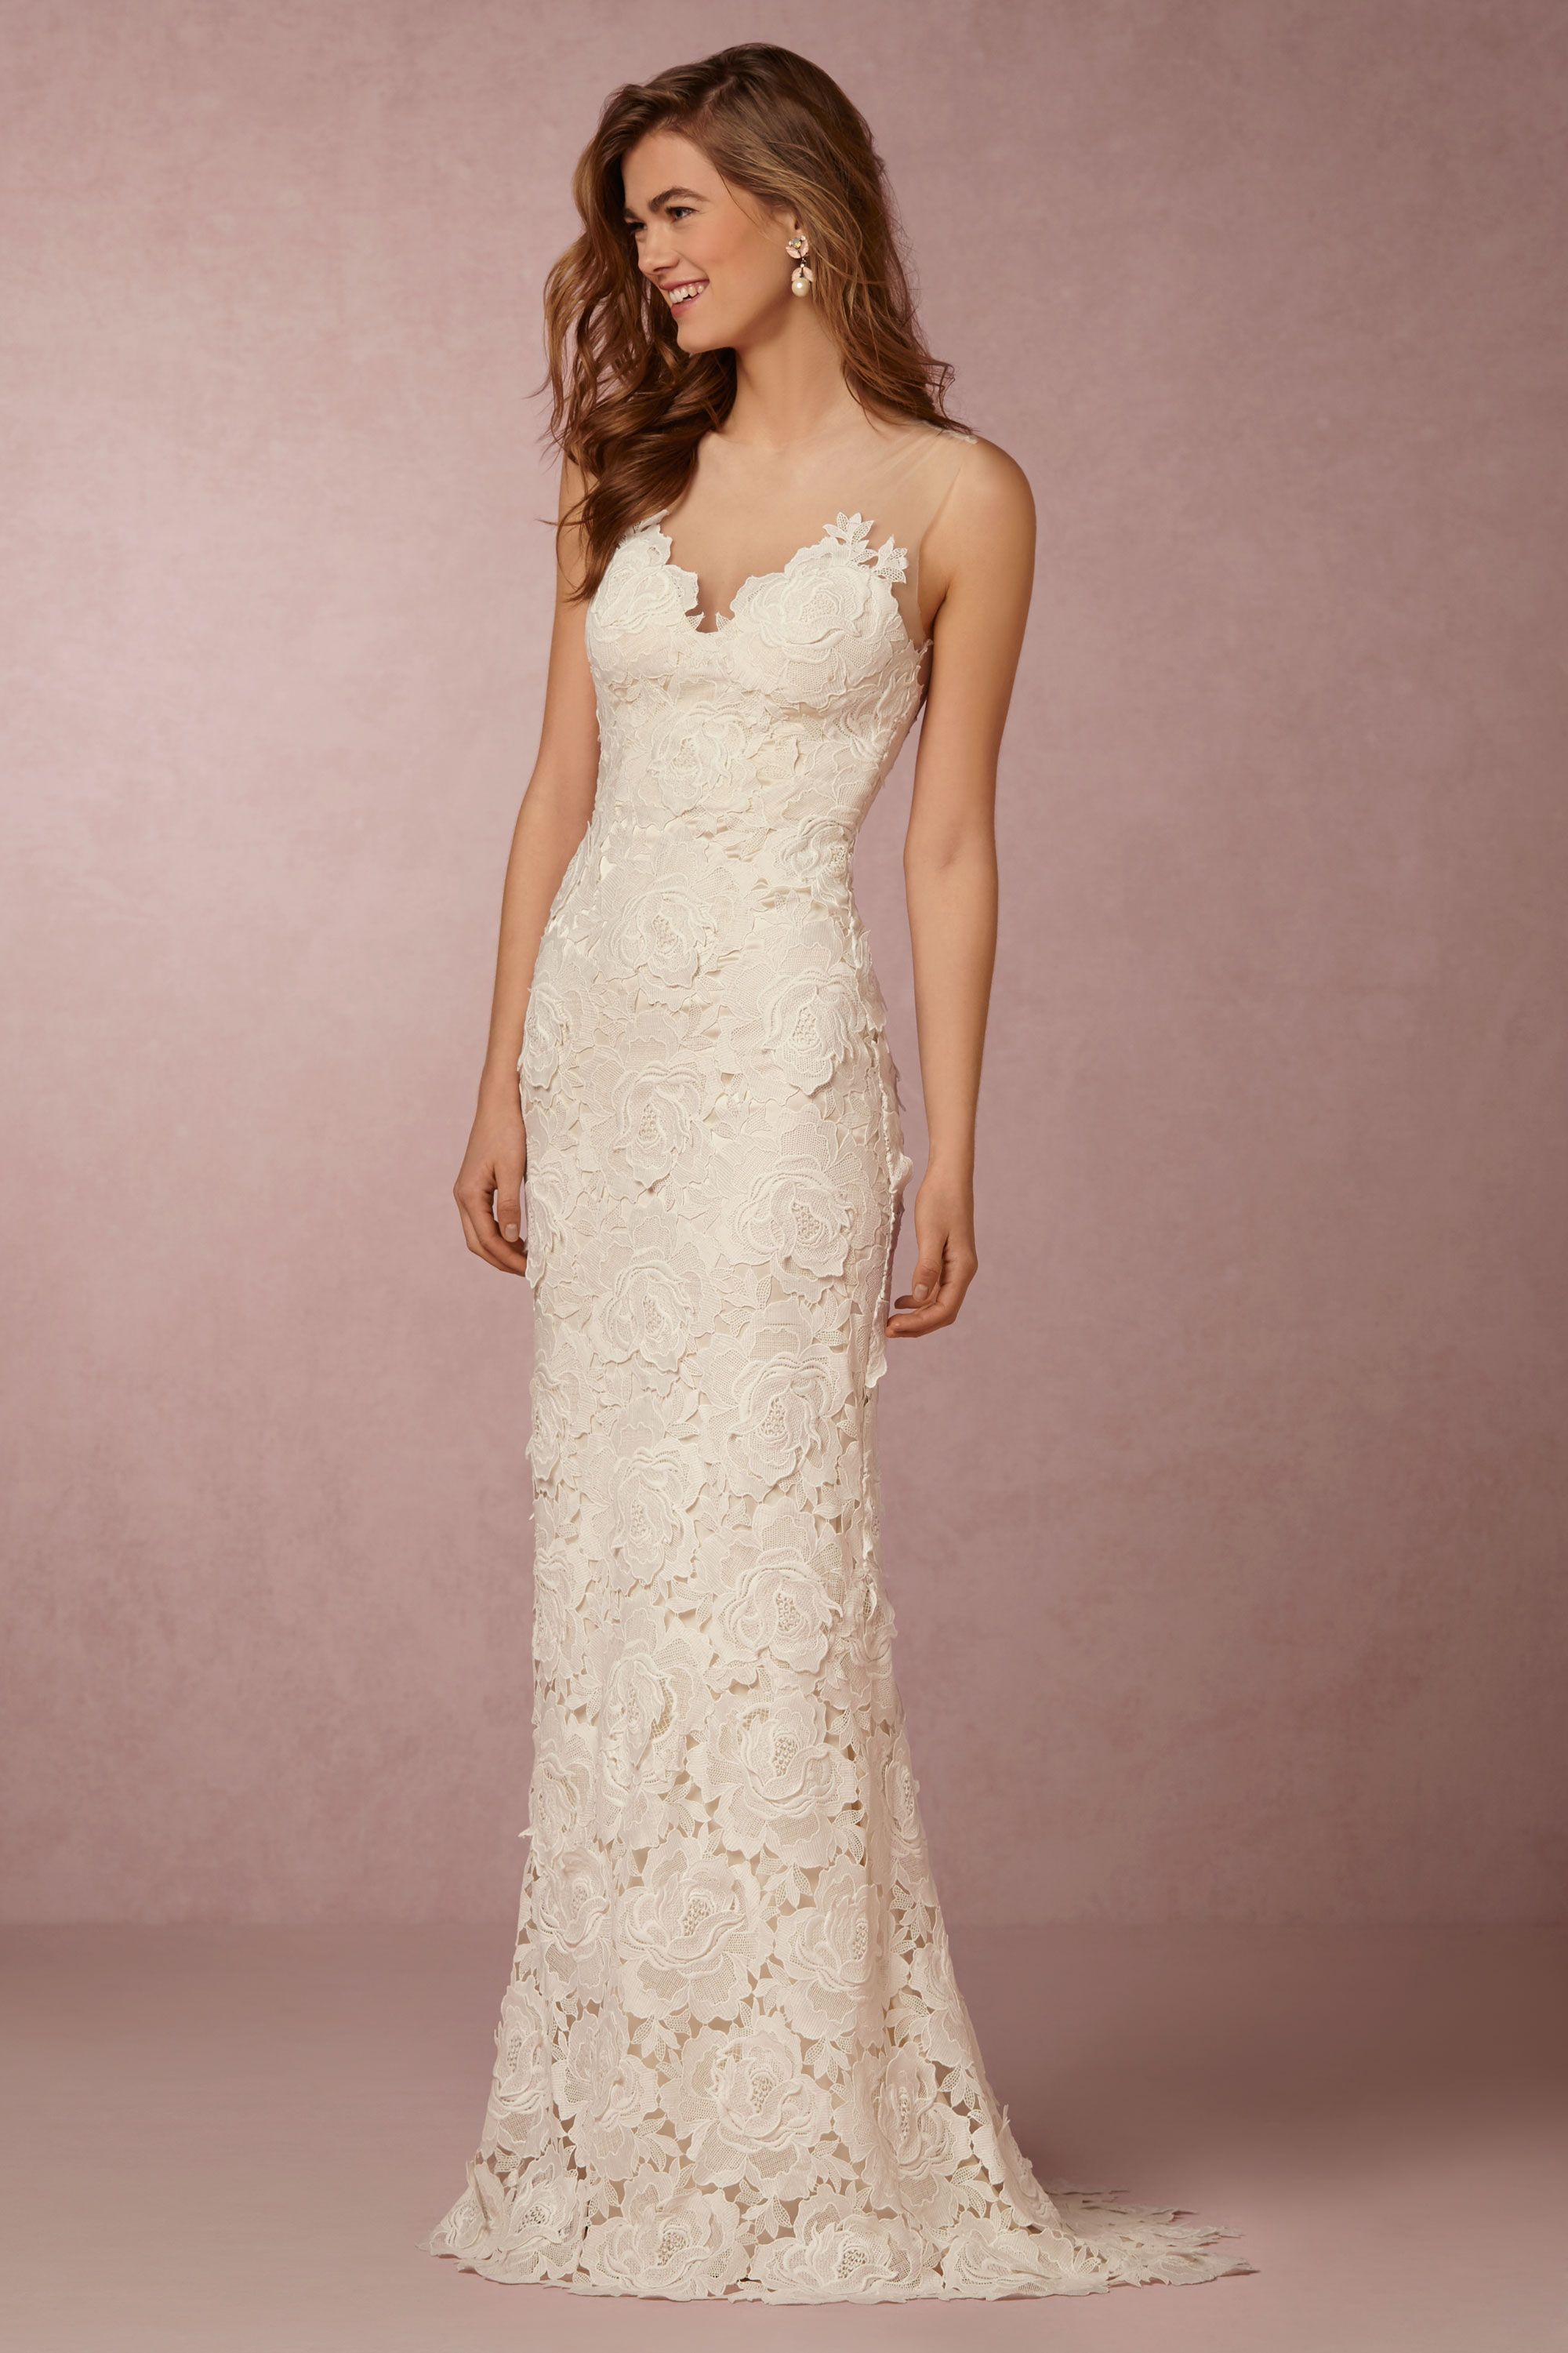 Lace wedding dress with a bold floral motif. The figure ...